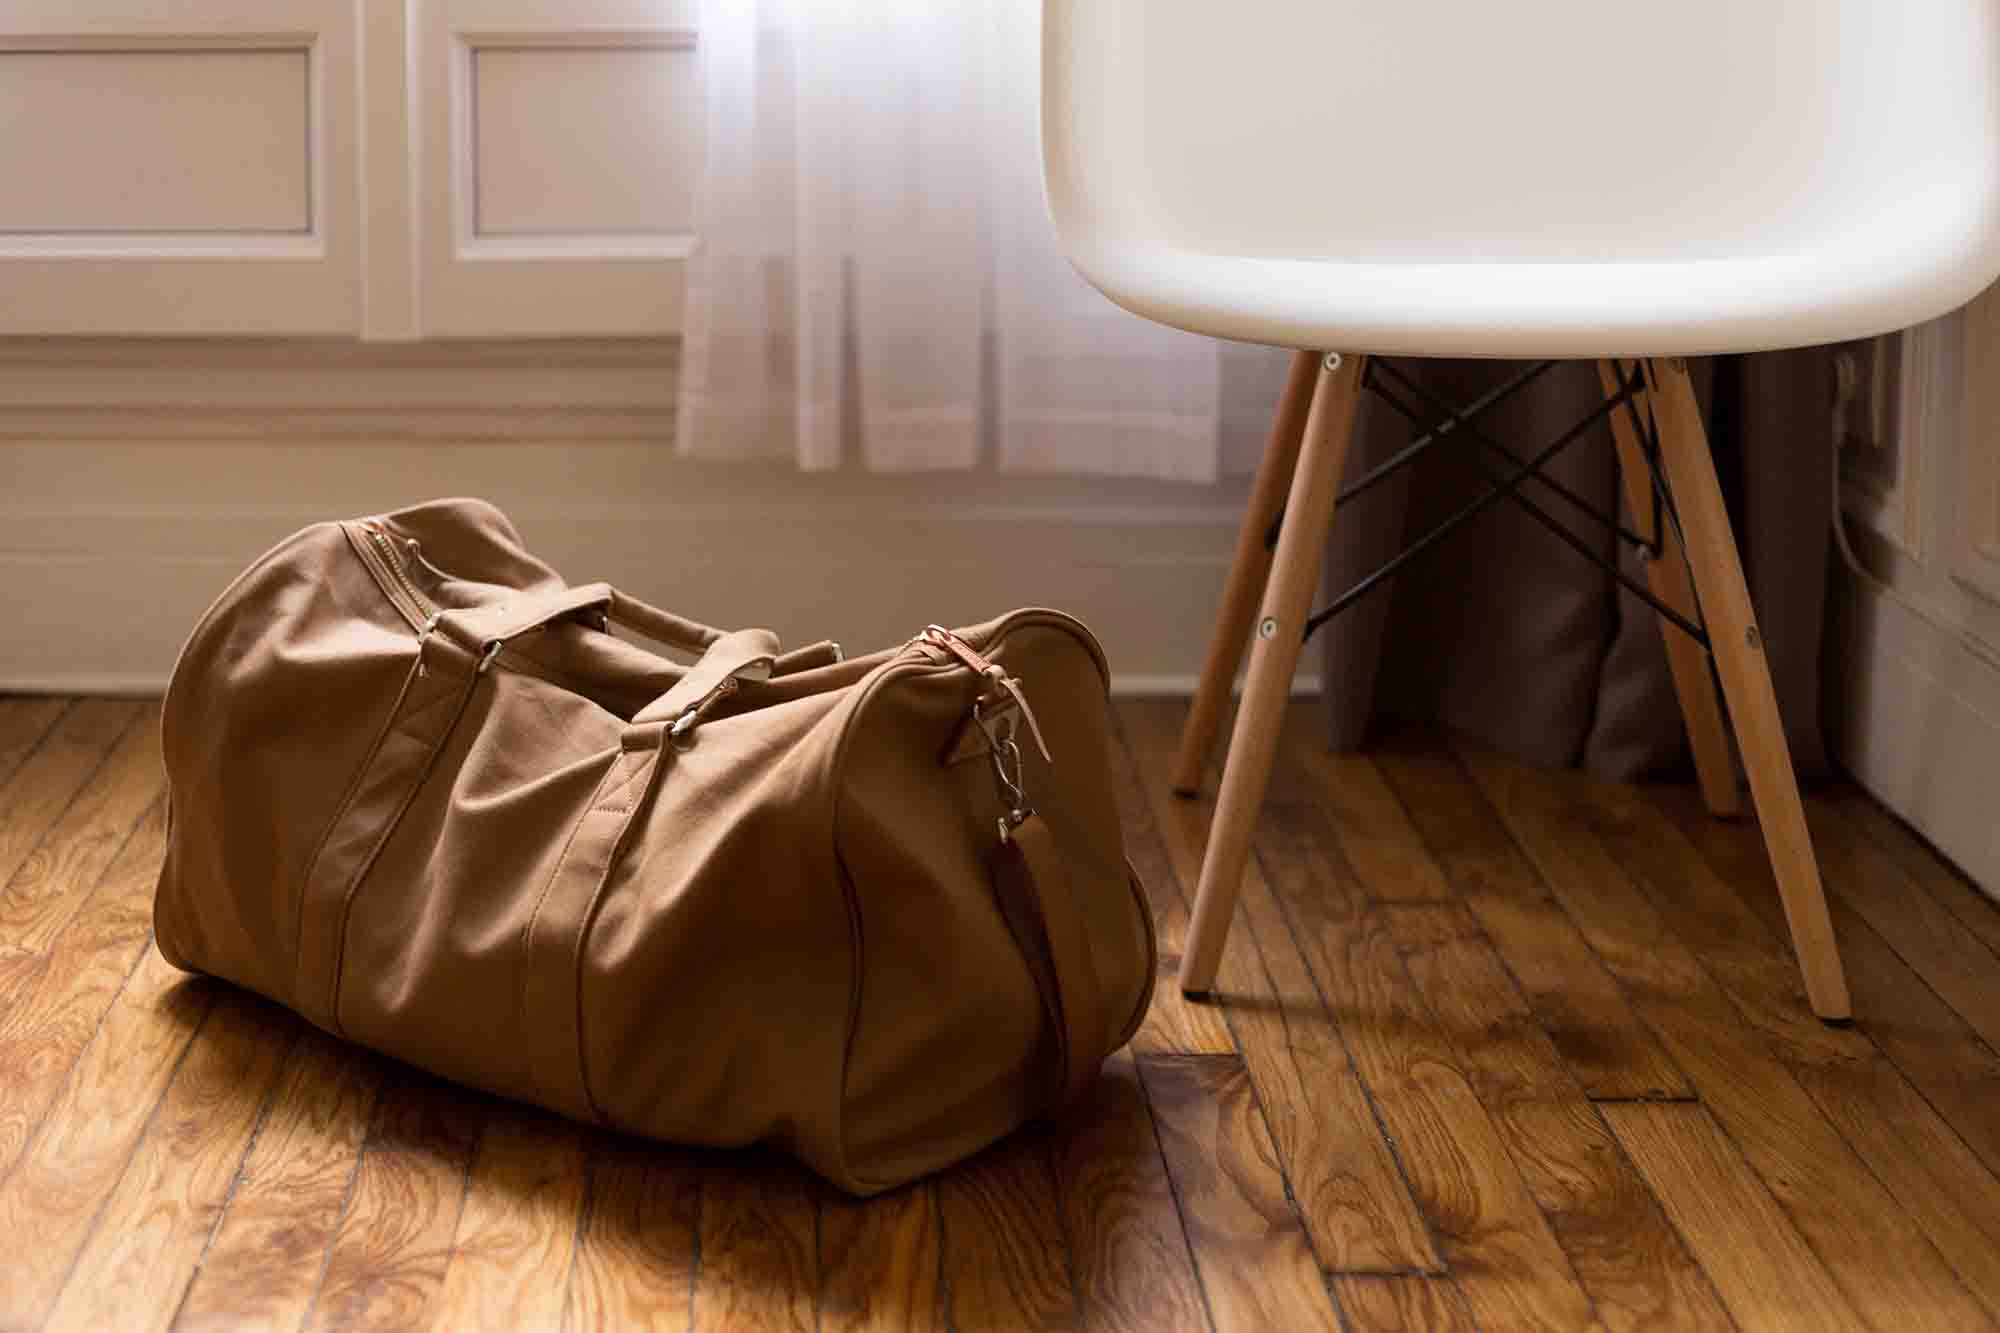 luggage and chair